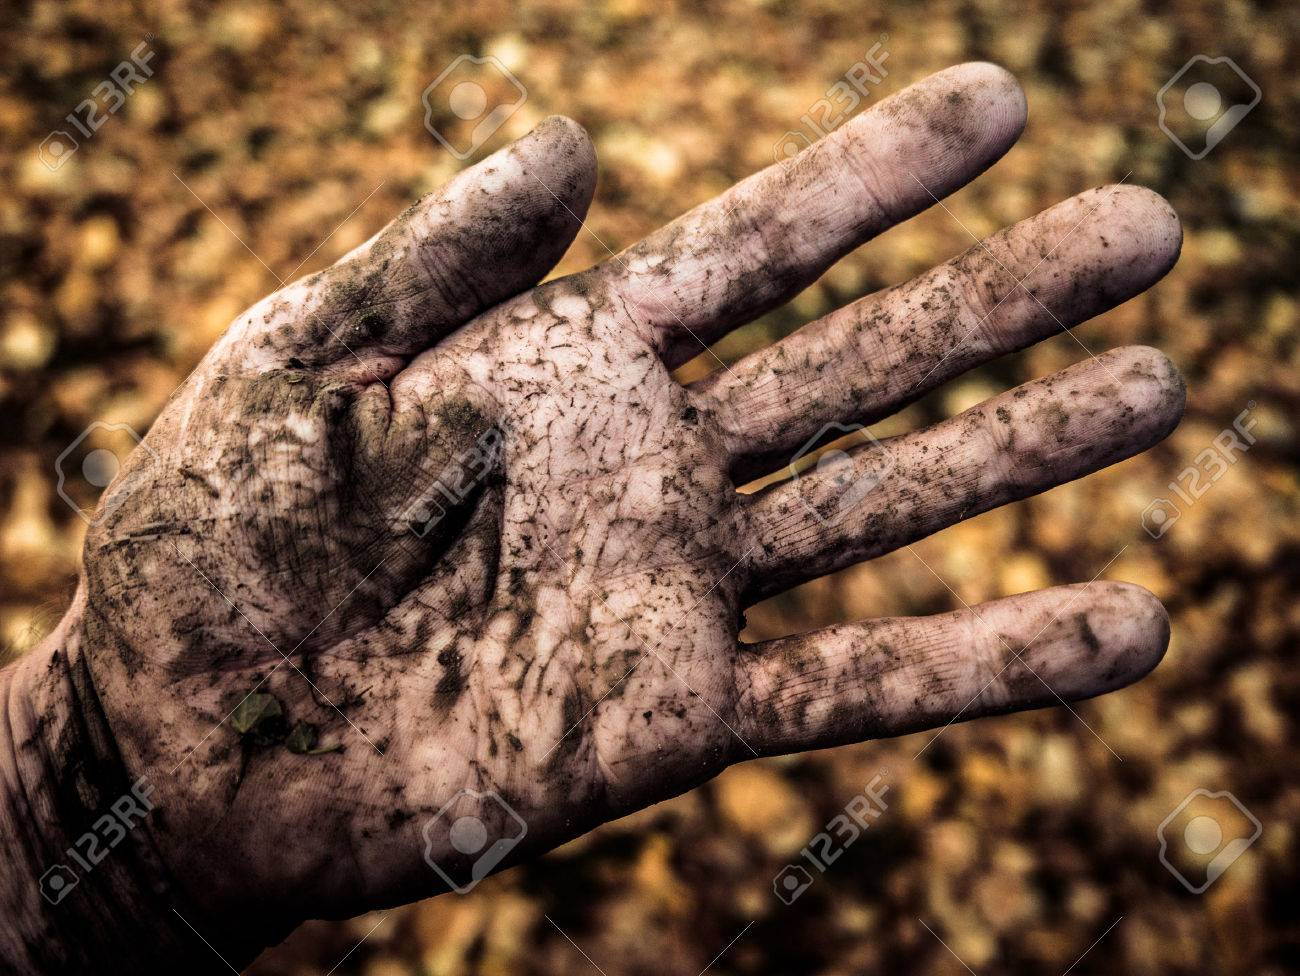 The Dirty Hand Of A Farmer Or Gardener Outside In Autumn Stock Photo ...